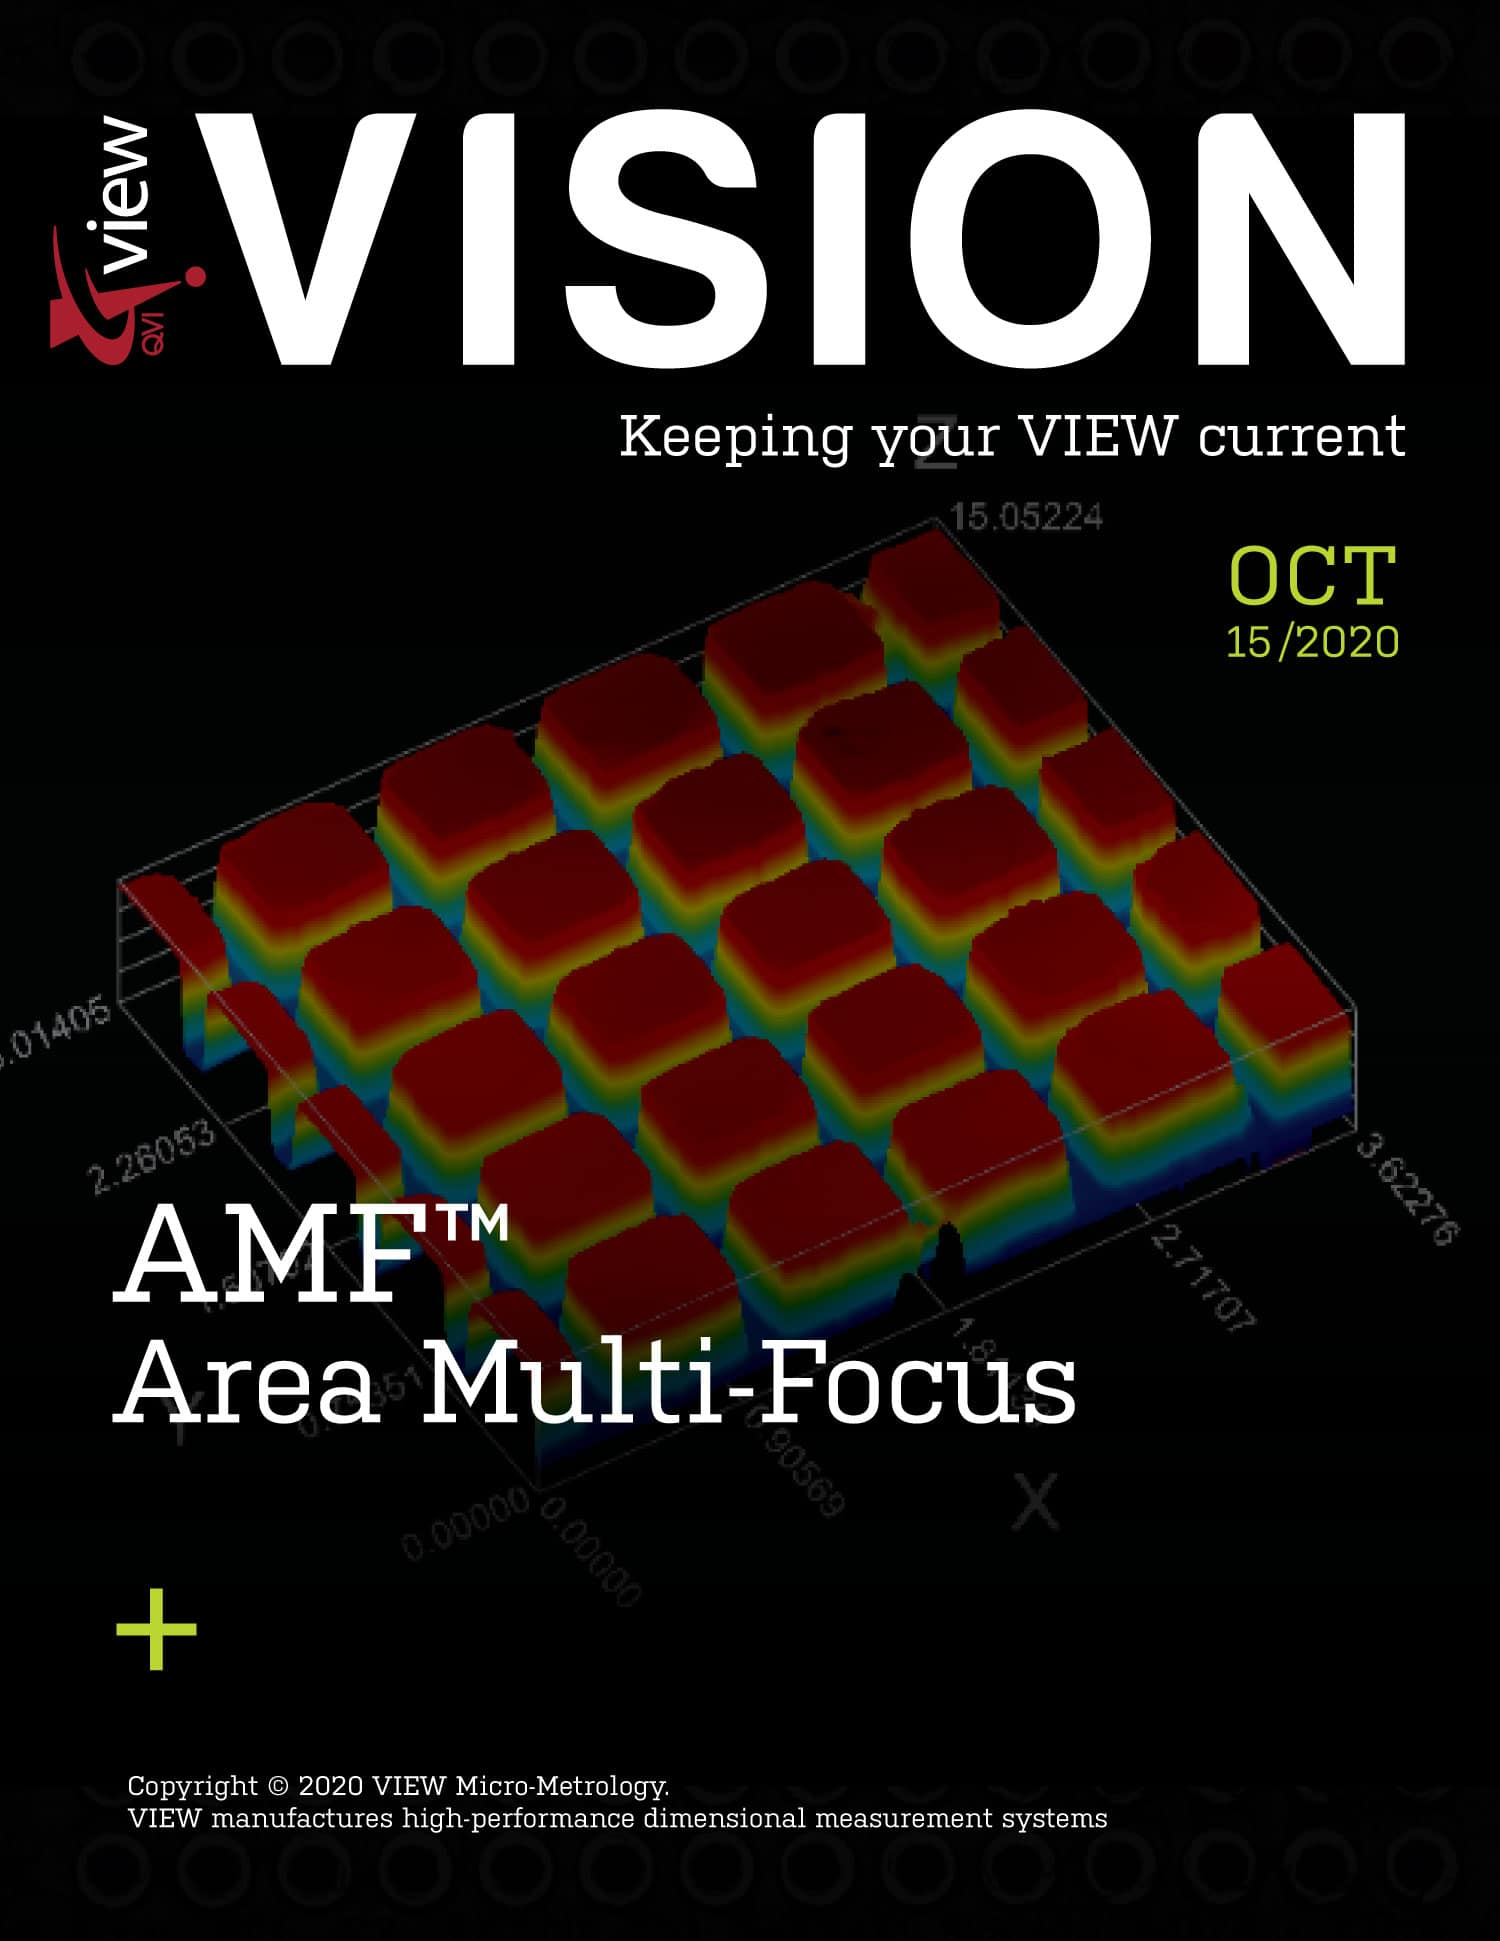 View-MM-VISION-cover-2020-oct-15